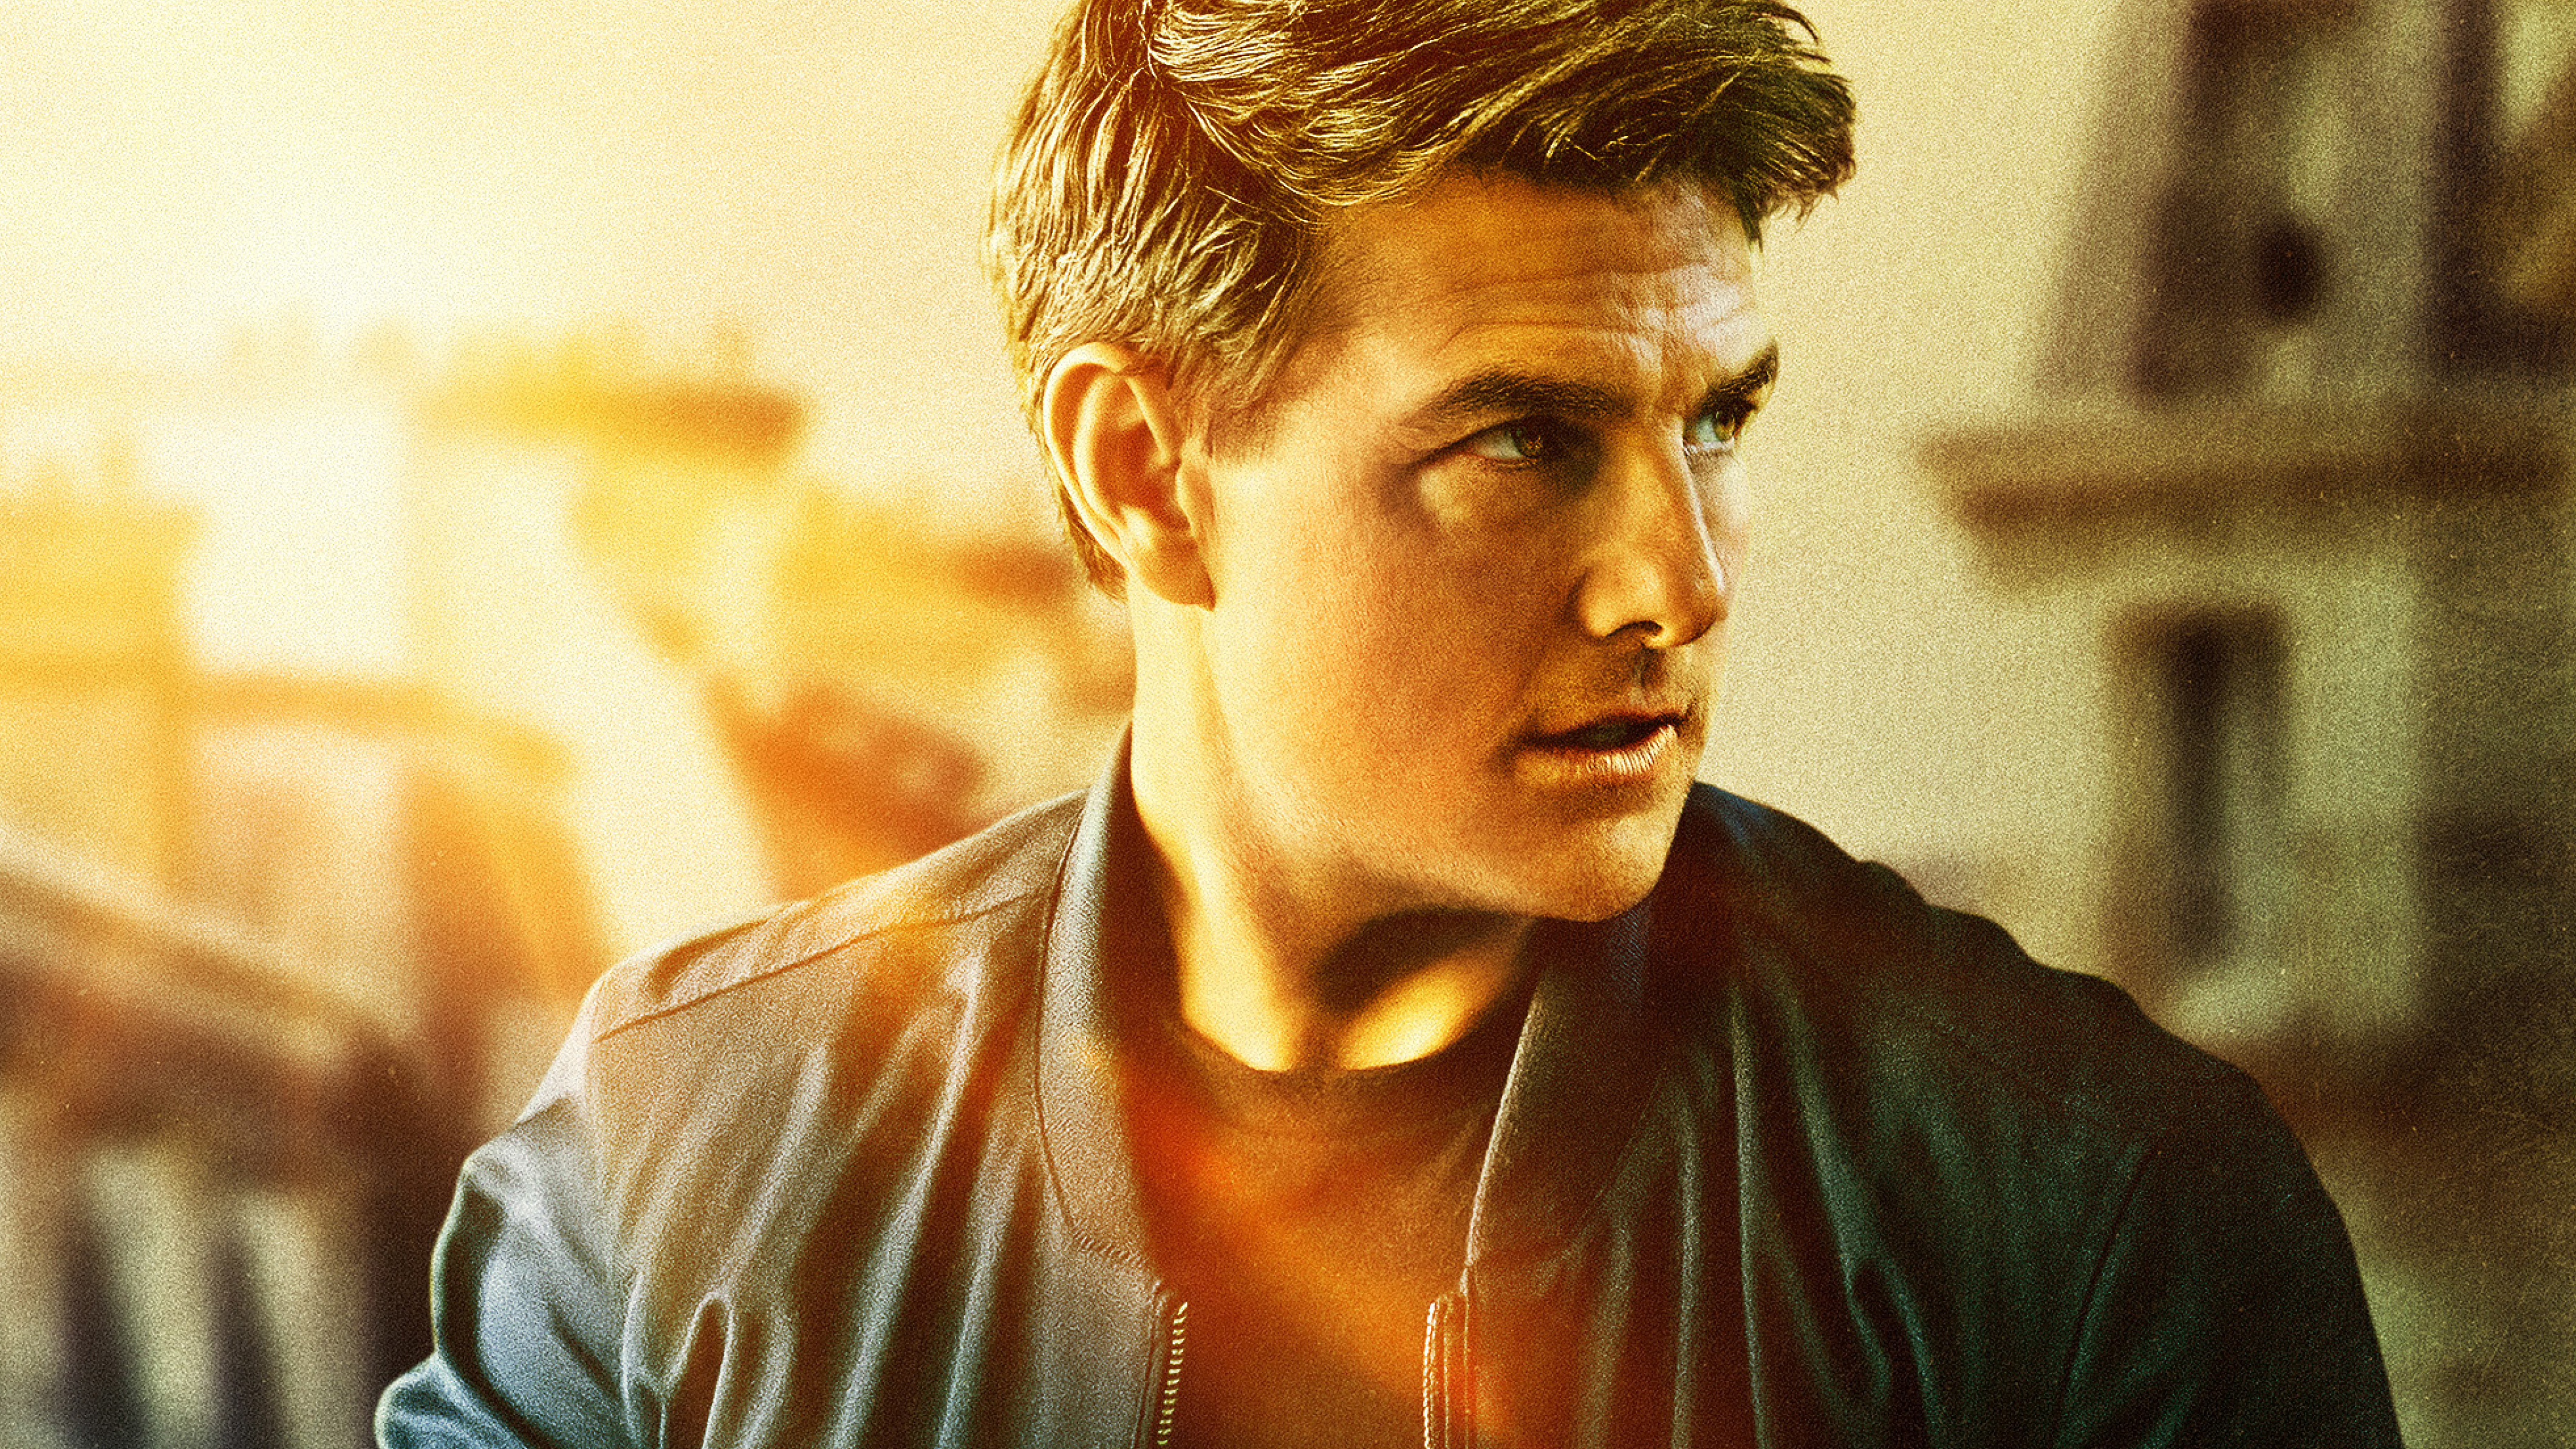 Tom Cruise As Ethan Hunt In Mission Impossible Fallout Movie Hd Movies 4k Wallpapers Images Backgrounds Photos And Pictures